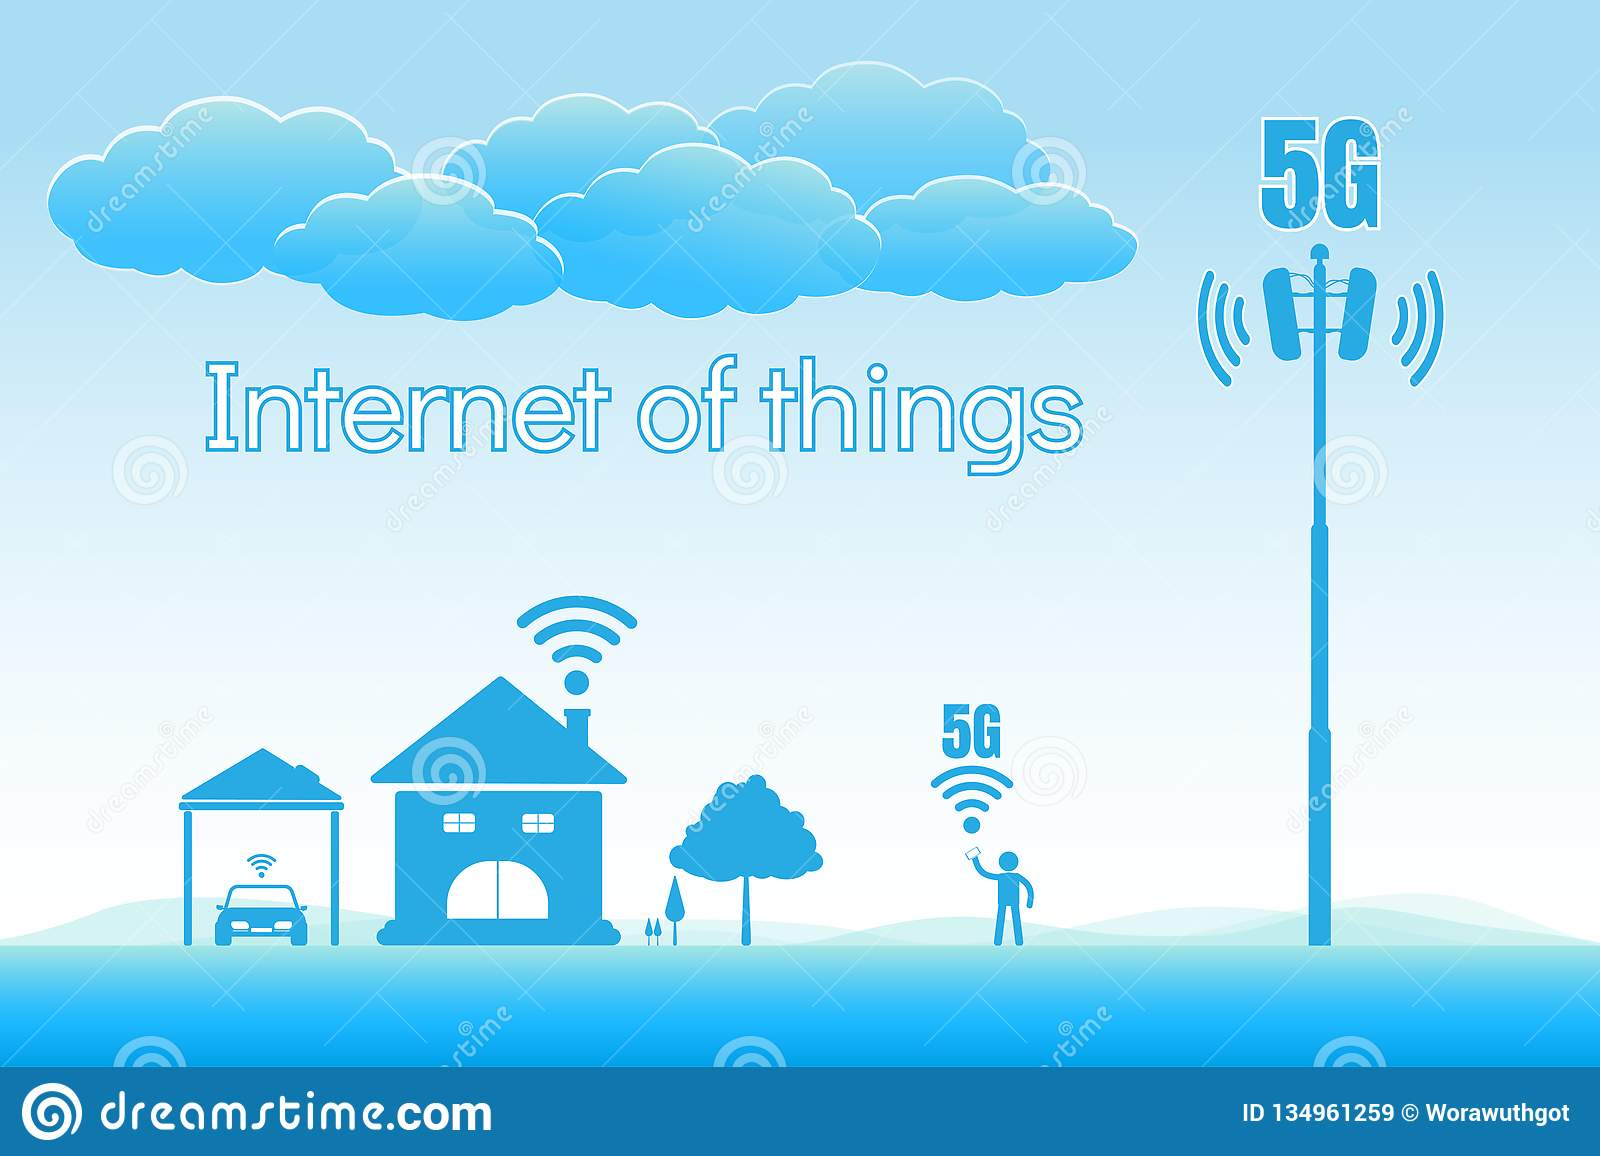 5G internet high speed concept, internet of things